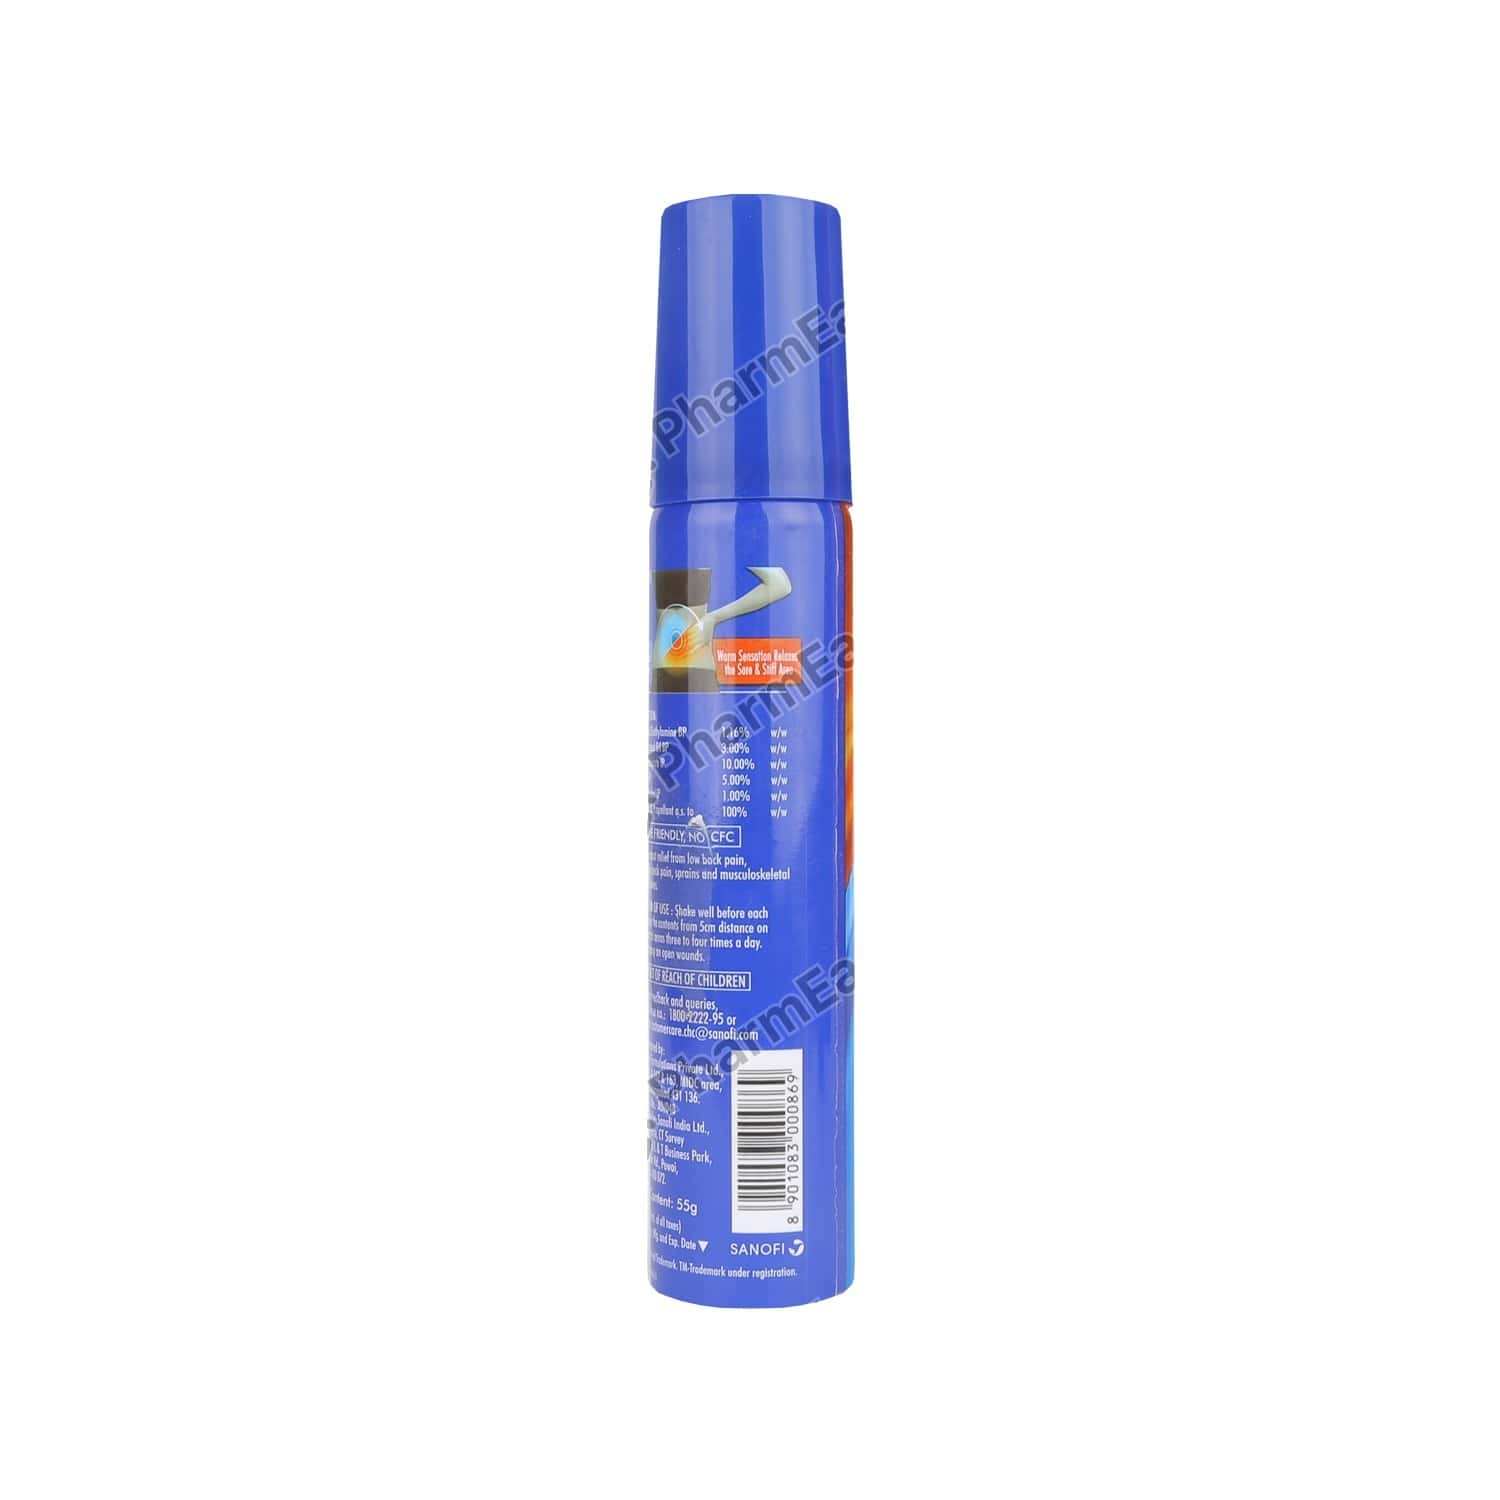 Combiflam Icyhot Fast Pain Relief Spray - 55 Gms